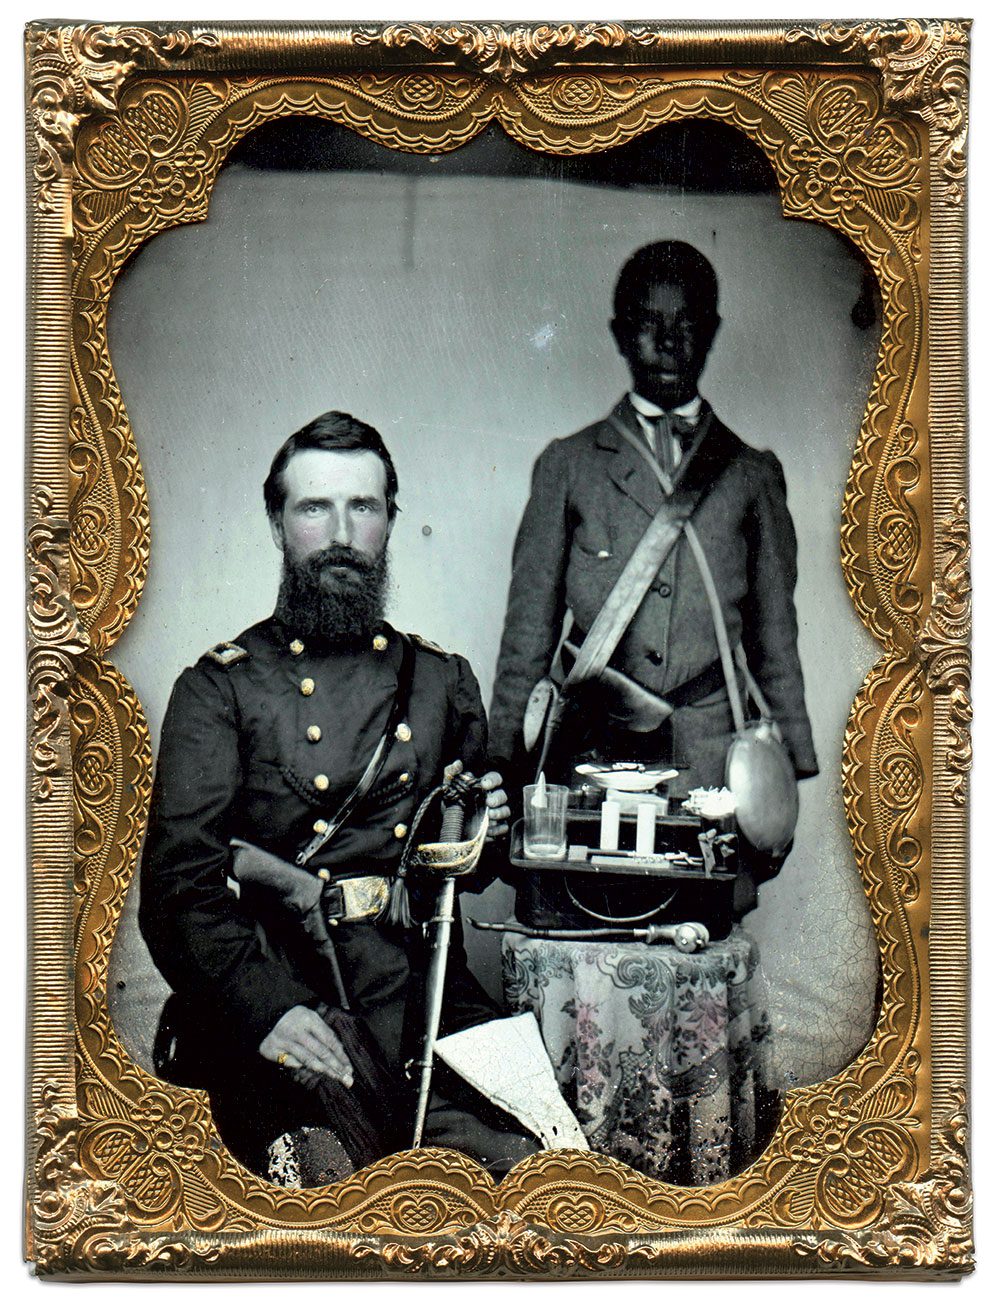 Watson and a personal attendant posed for this portrait during the major's enlistment with the 6th in 1861. Watson sits with his Model 1851 staff and field sword, holstered revolver, and thick braided cord, likely a pocket watch chain, extending from the slash pocket of his uniform coat to a button on his double-breasted frock coat. The attendant, his name unknown, stands behind Watson. He wears a civilian coat, holstered revolver, canteen with fabric sling and a haversack that appears to be constructed from rubberized material instead of the more common tarred weatherproofing treatment. On the table between the two men sits a hinged carrying case, its trays opened to reveal a pair of candles with unlit wicks, a drinking glass, plate, tin box, corkscrew, and eating utensils. The napkin on Watson's knee compliments the contents of the case. A pipe with wood bowl and cap and curved stem completes the picture. Quarter-plate ambrotype by an unidentified photographer. Author's collection.